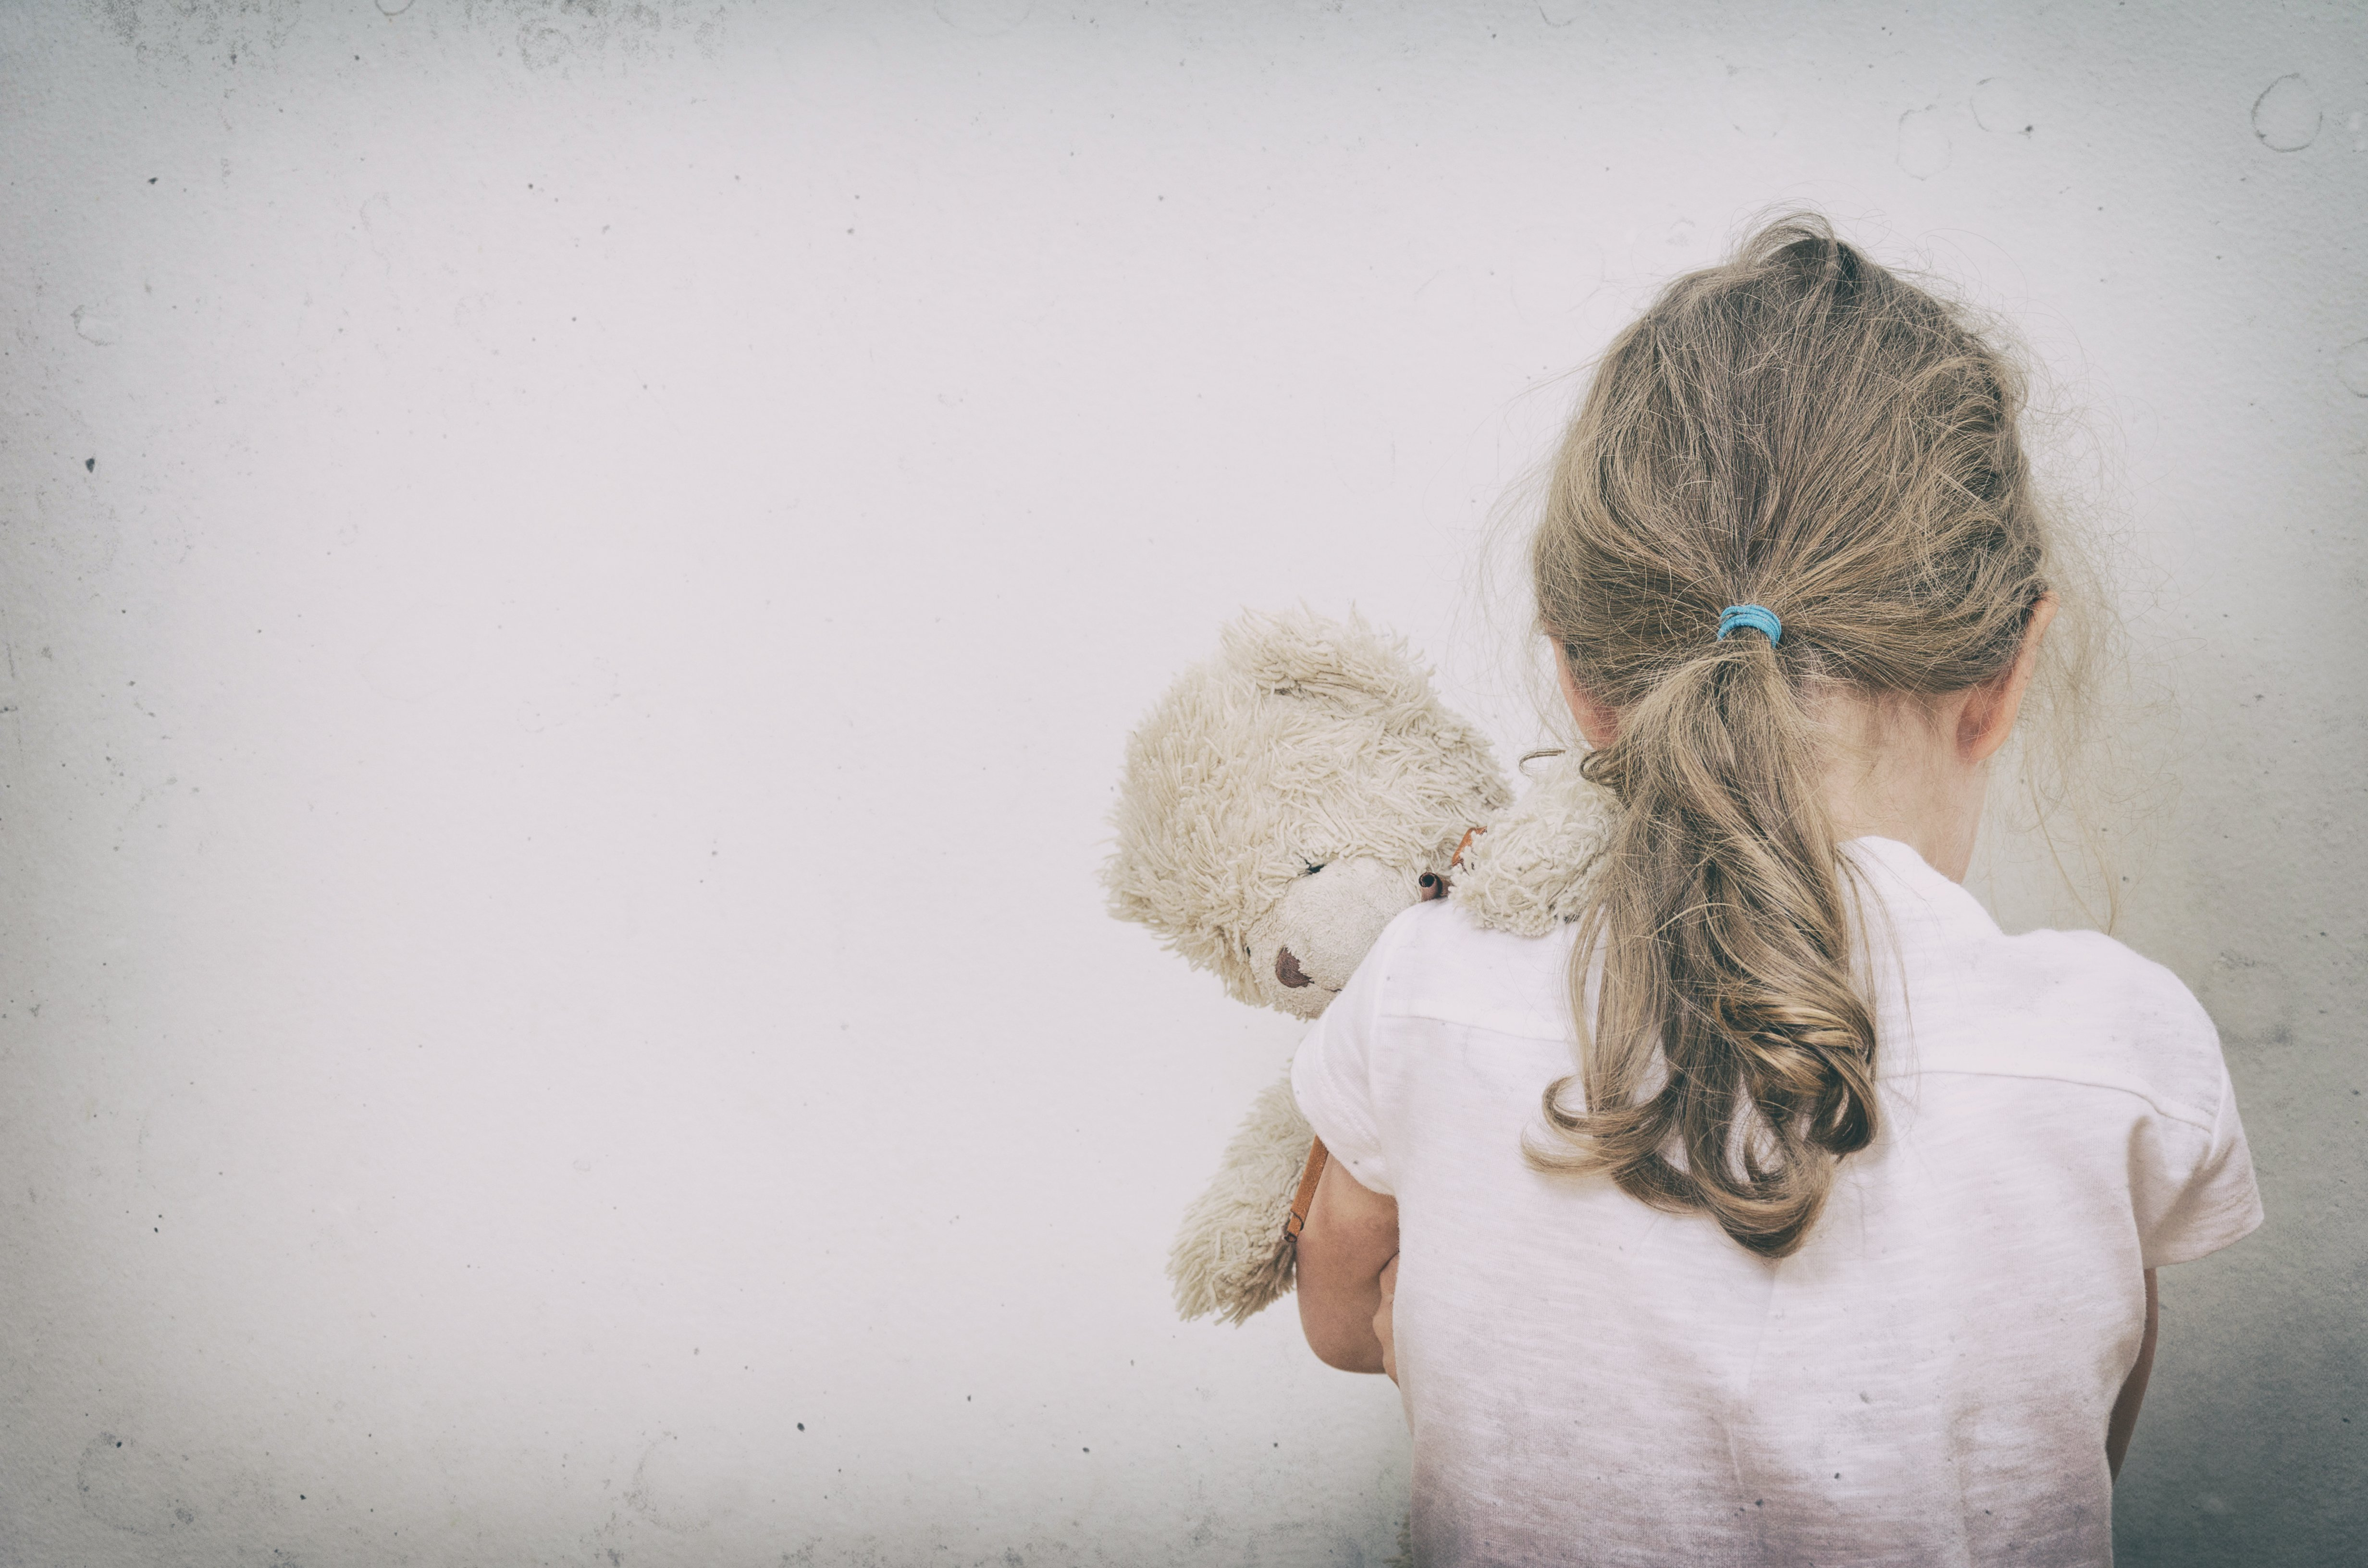 A sad little girl from the back holding her teddy bear. | Source: Shutterstock